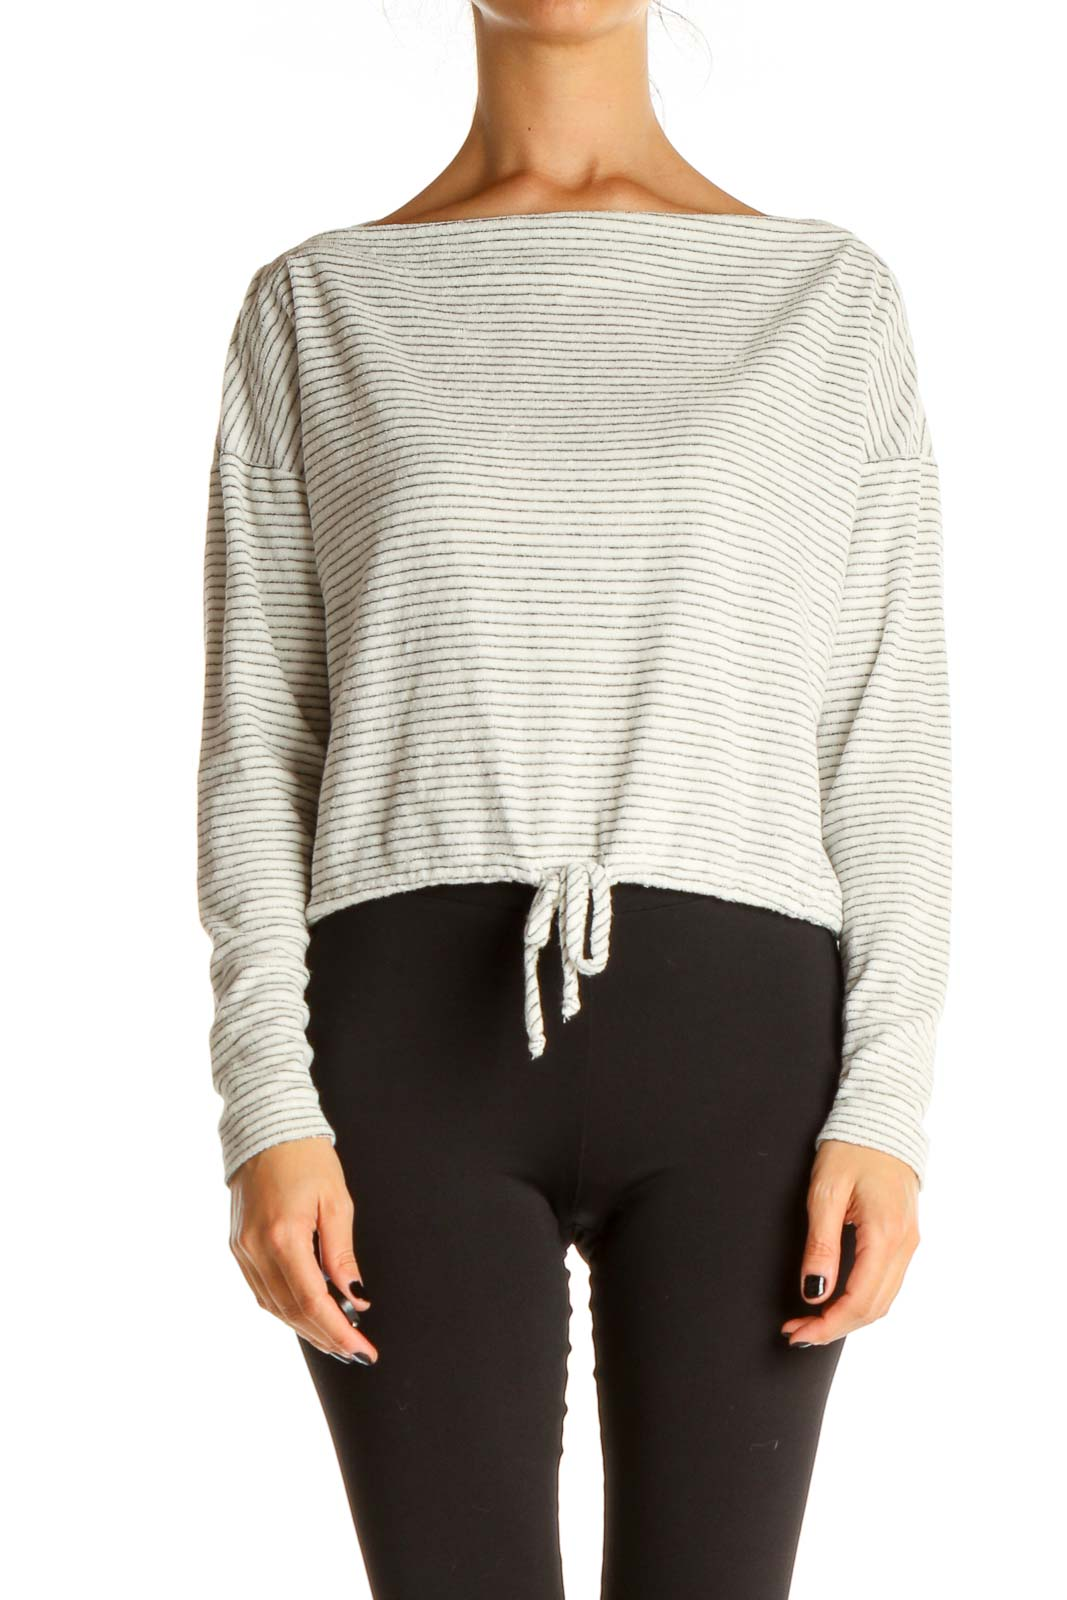 White Striped Brunch Top Front